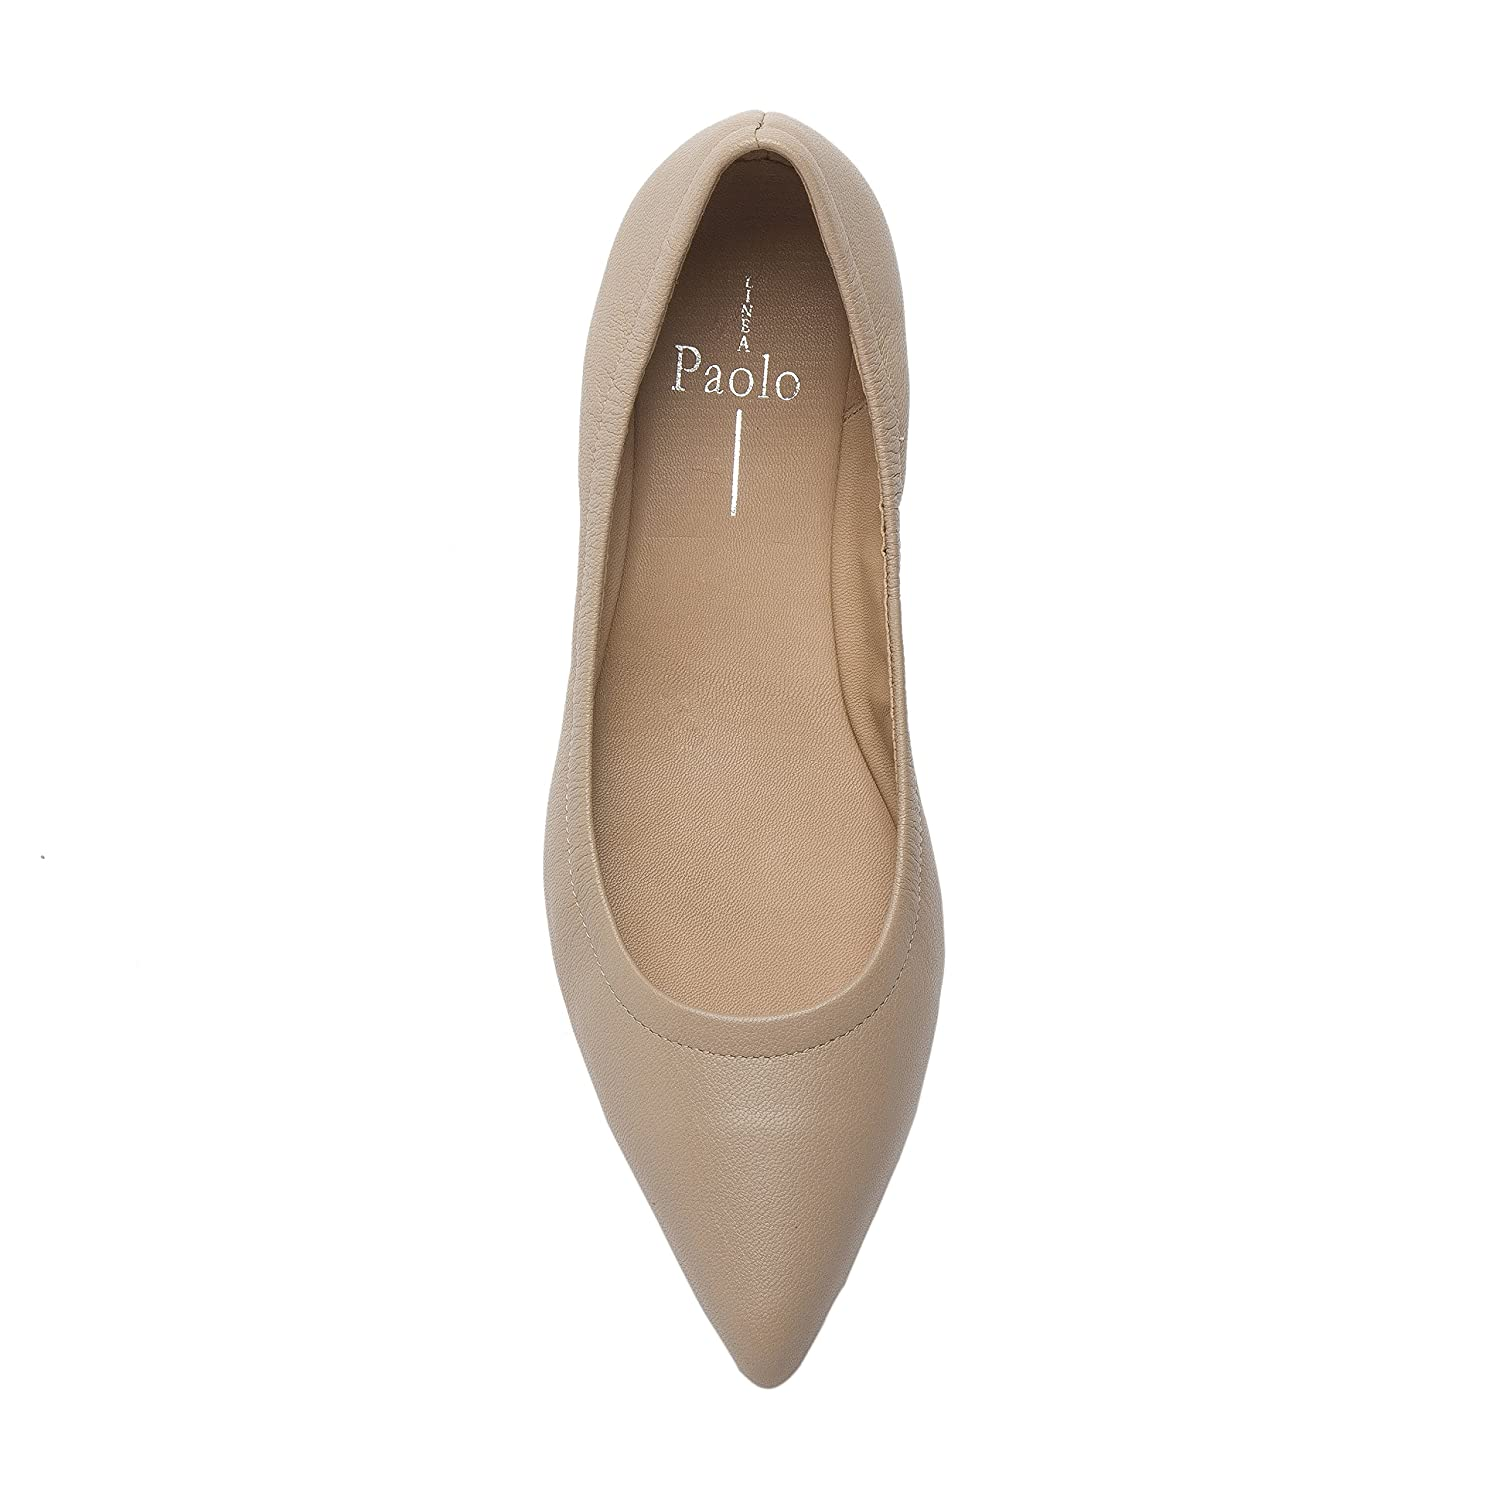 NICO   Women's Pointy Toe Elasticized Leather or Suede Ballet Flat (New Spring) B0778S1FC6 9.5 M US Blush Light Pebbled Leather